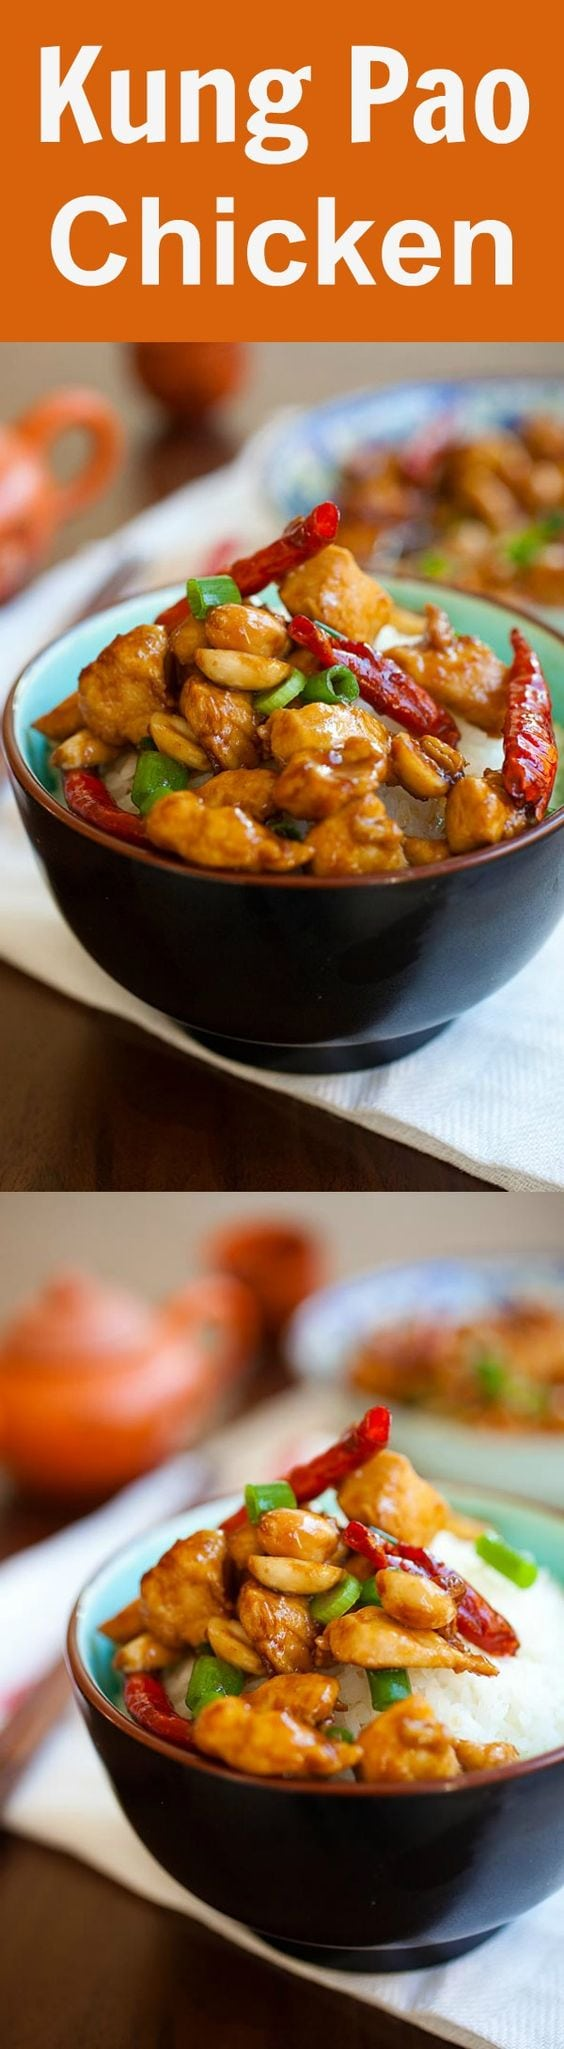 Kung Pao Chicken - Chinese takeout classic loaded with spicy chicken, peanuts, vegetables in a mouthwatering Kung Pao sauce. This easy homemade recipe is healthy, low in calories and much better than takeout | rasamalaysia.com